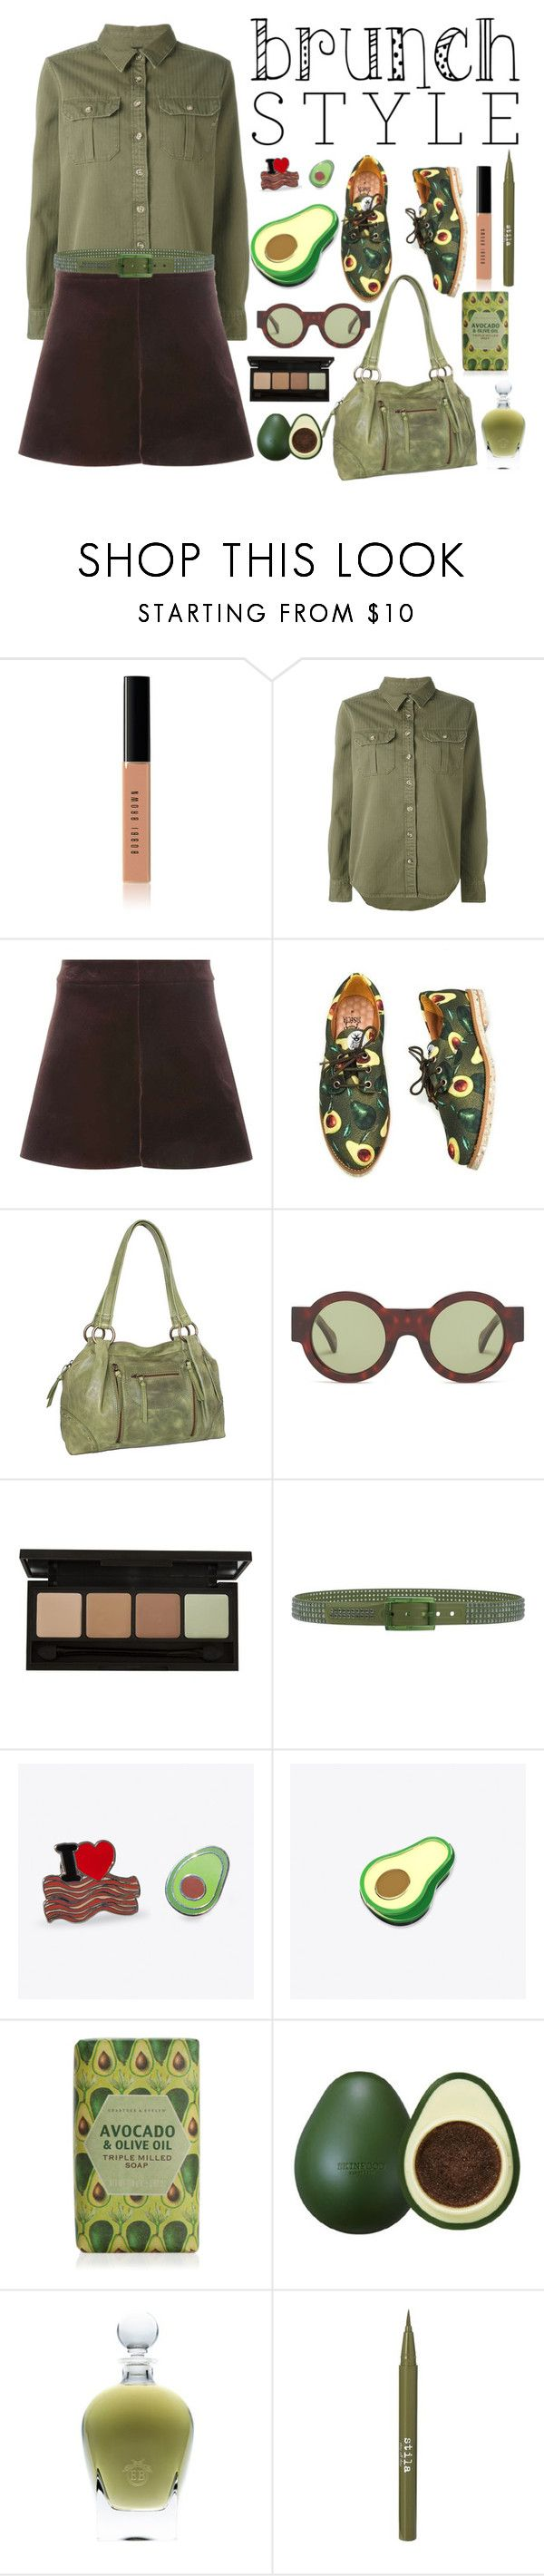 """Avocado"" by lily-mitchell ❤ liked on Polyvore featuring Bobbi Brown Cosmetics, The Seafarer, Dorothy Perkins, Nino Bossi Handbags, Kaleos, Tie-Ups, Punky Pins, Skinfood, EB Florals and Stila"